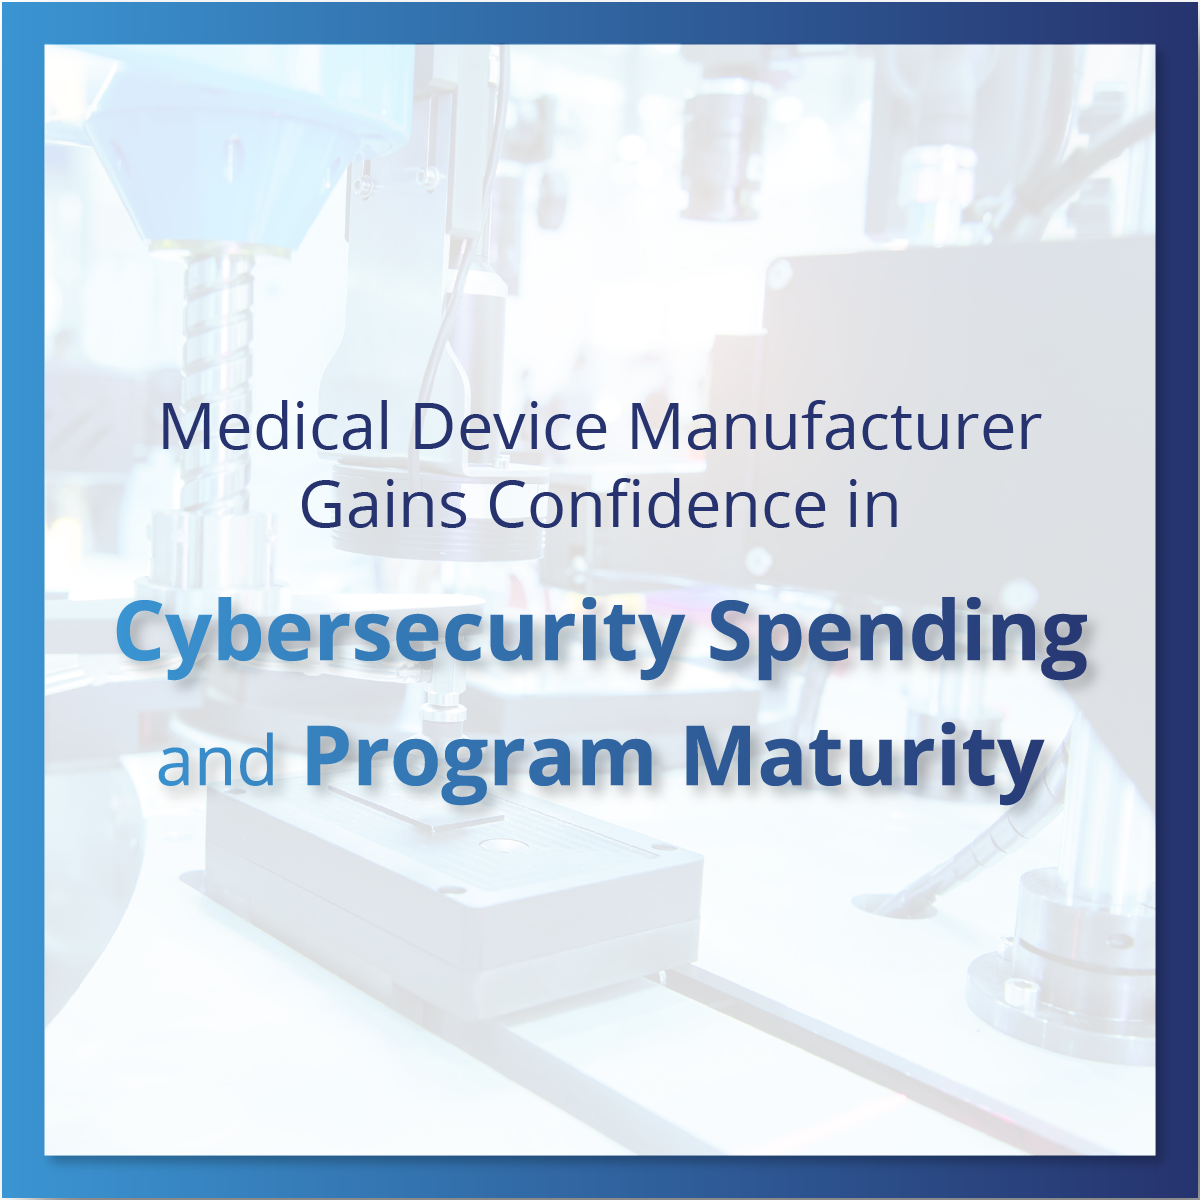 Medical Device Manufacturer Gains Confidence in Cybersecurity Spending and Program Maturity